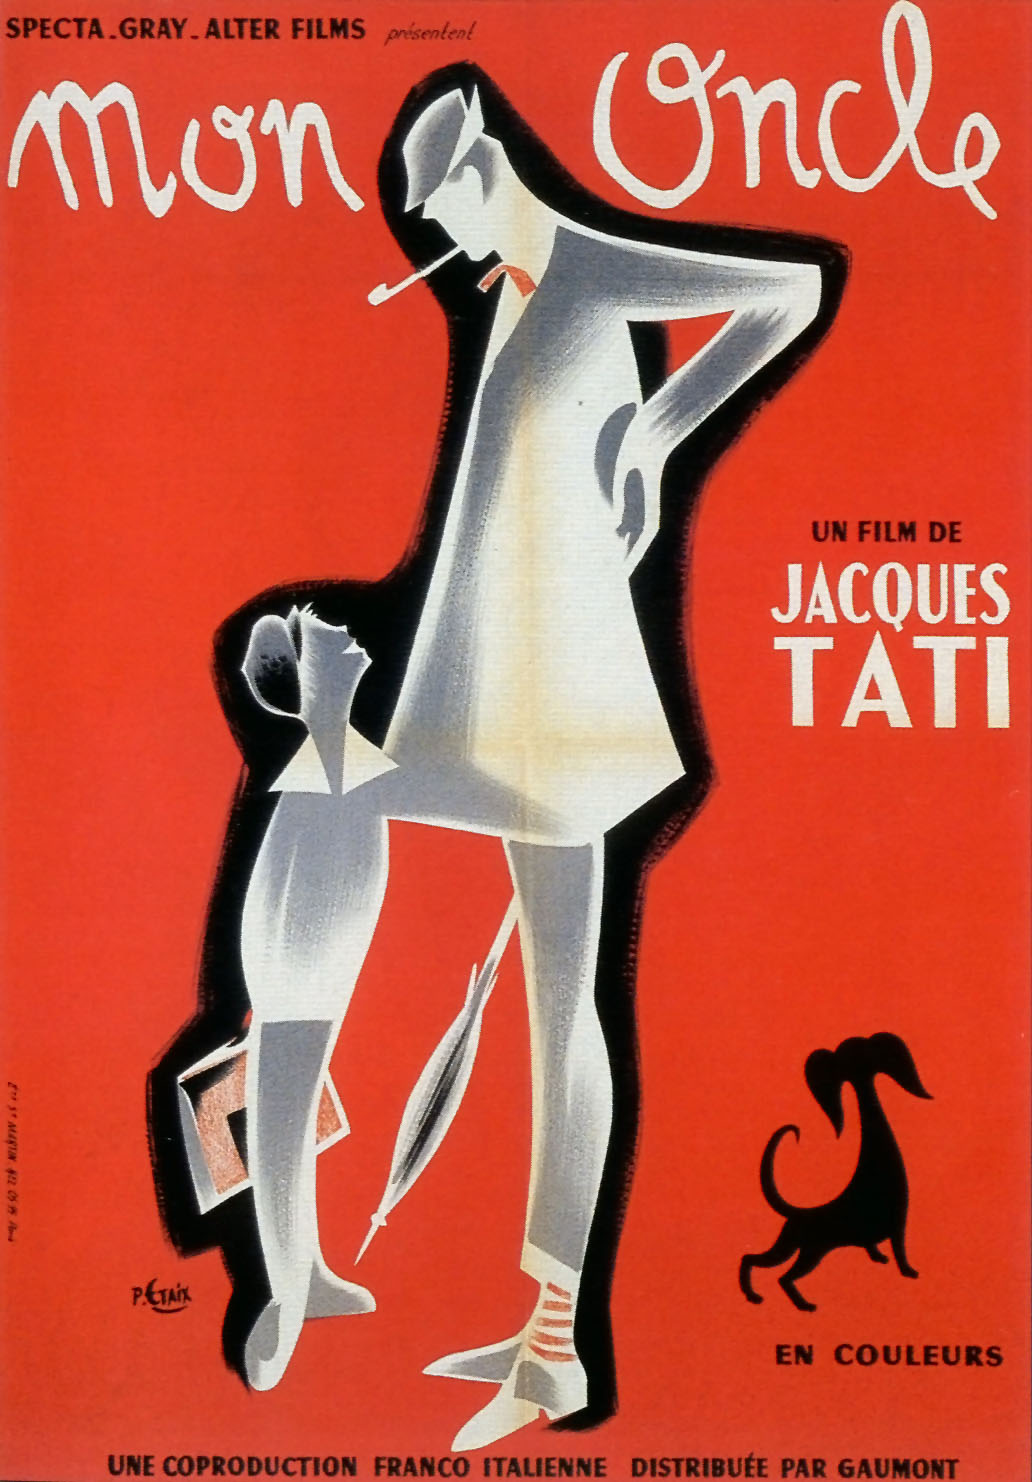 Tapis Tati Language Trainers Foreign Film Reviews From Jacques Tati Mon